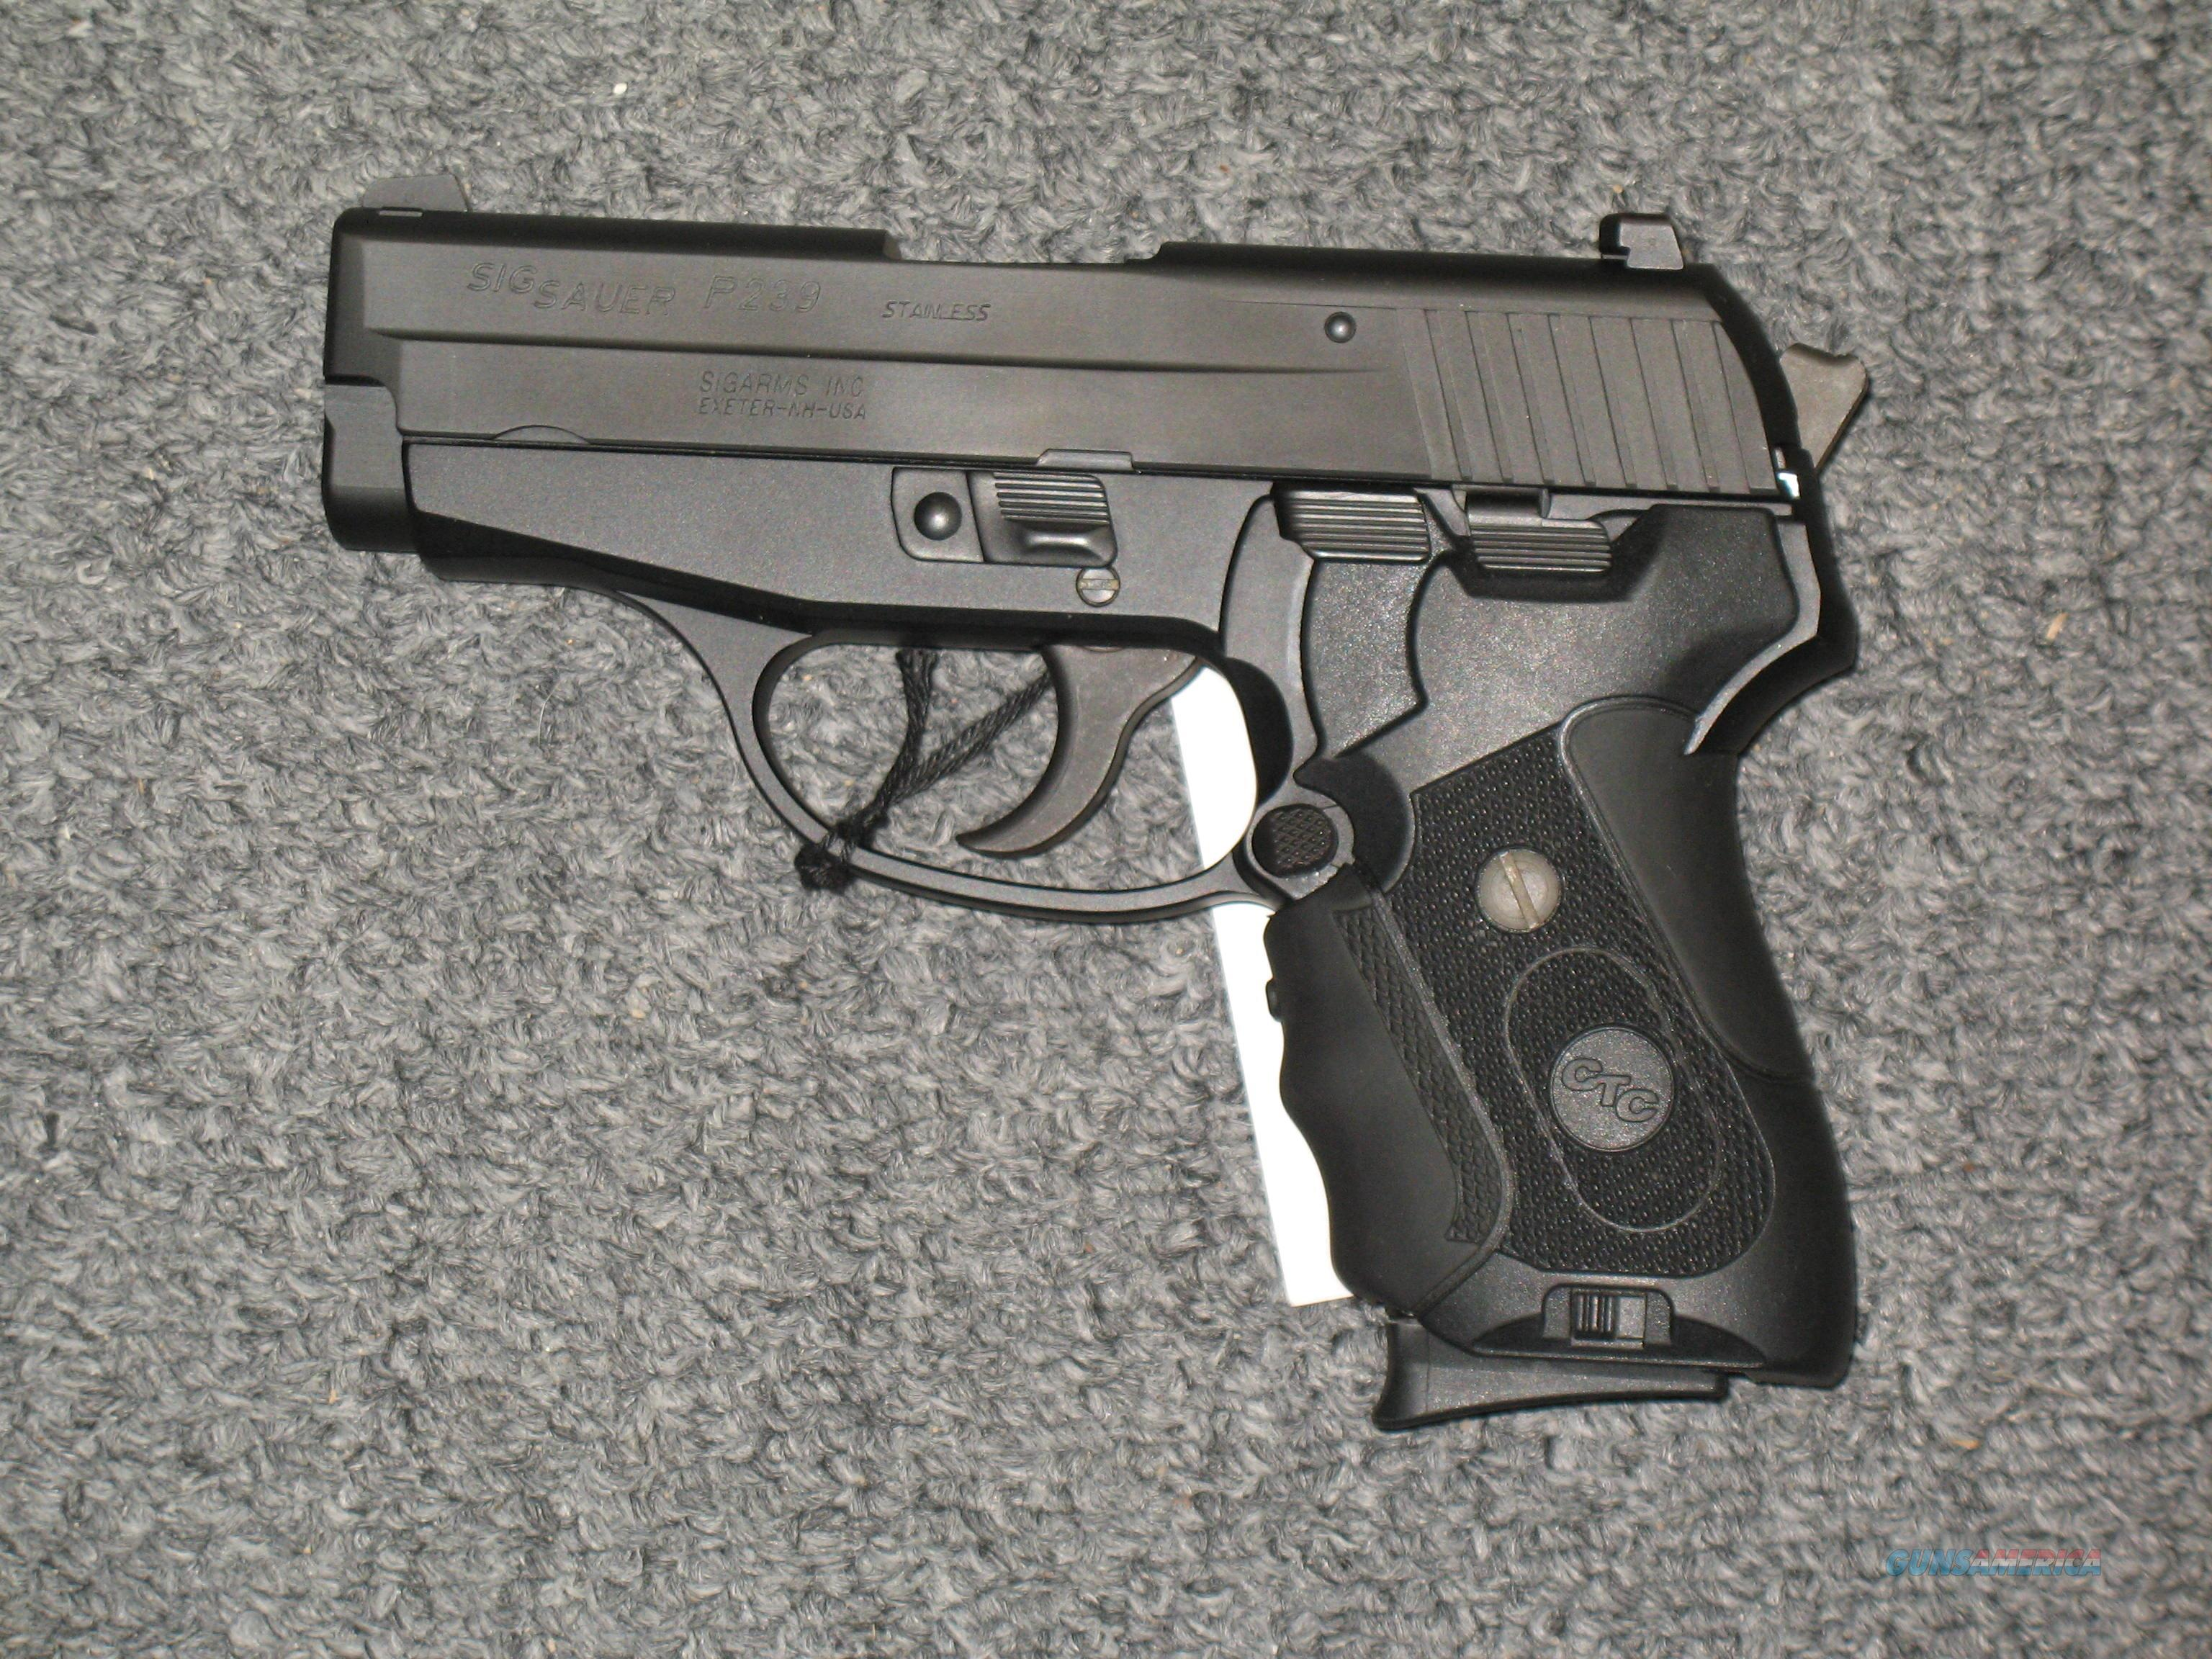 P239 with Crimson Trace laser grips and Night Sights with two 7 round magazines  Guns > Pistols > Sig - Sauer/Sigarms Pistols > P239